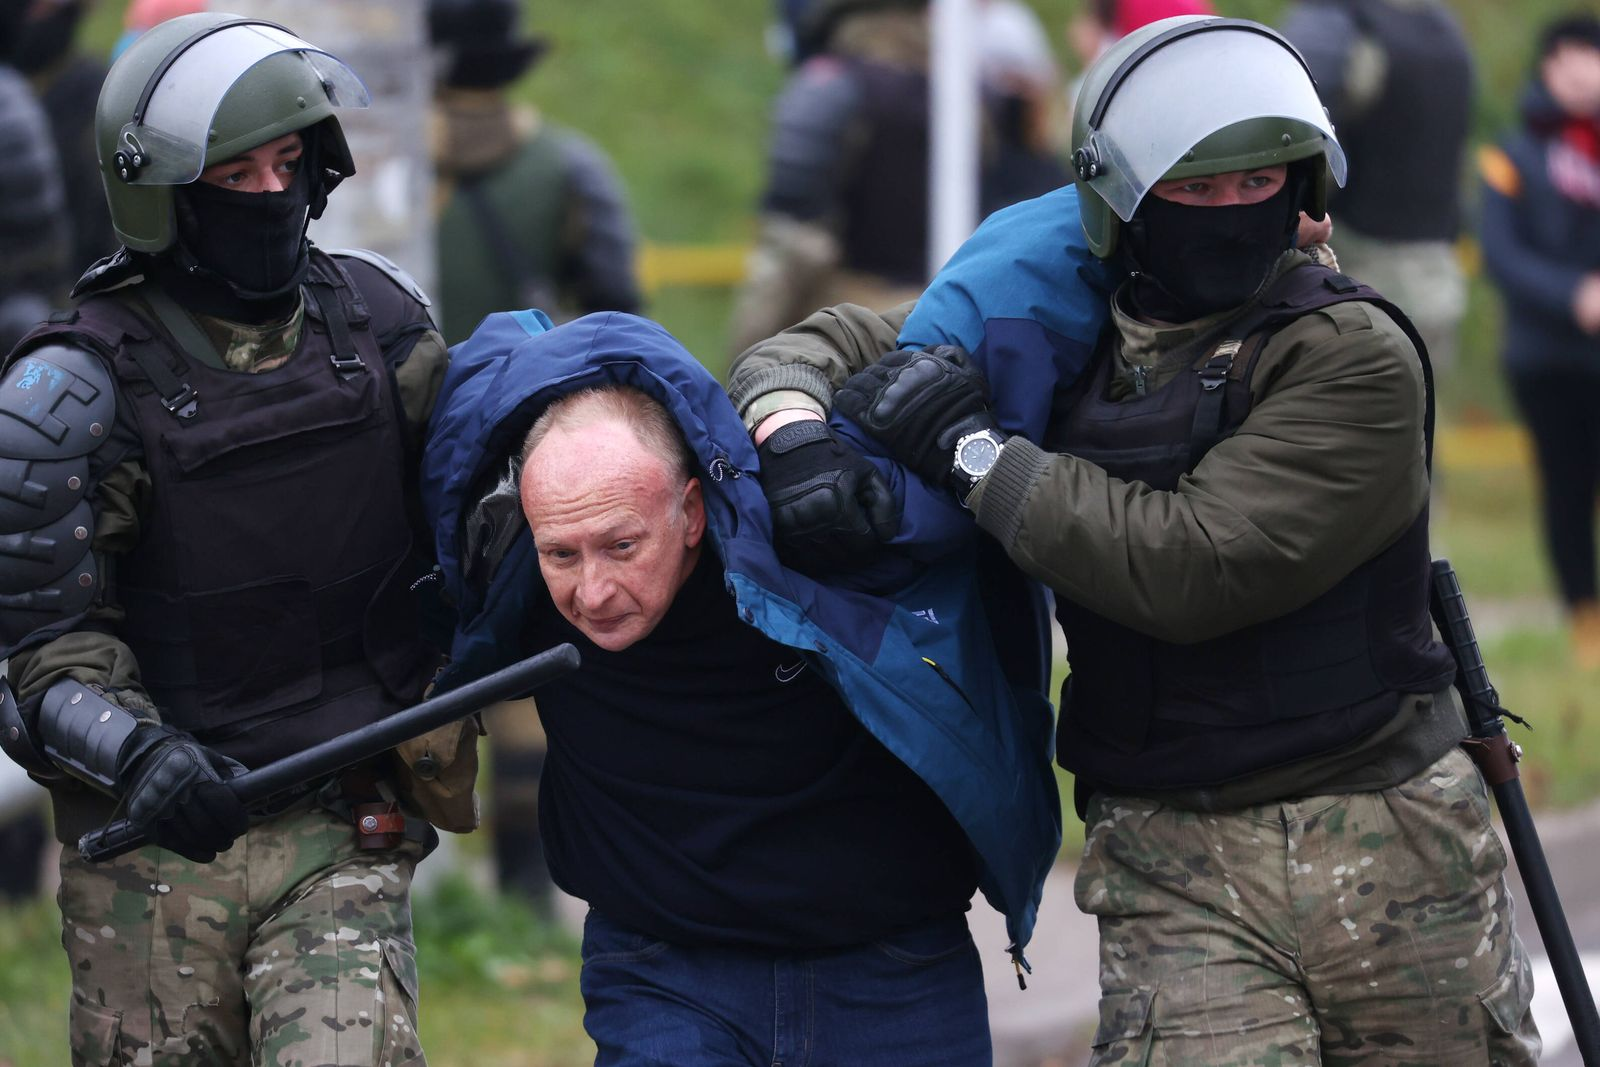 MINSK, BELARUS - NOVEMBER 15, 2020: Law enforcement officers detain a participant in the March of the Brave protest eve